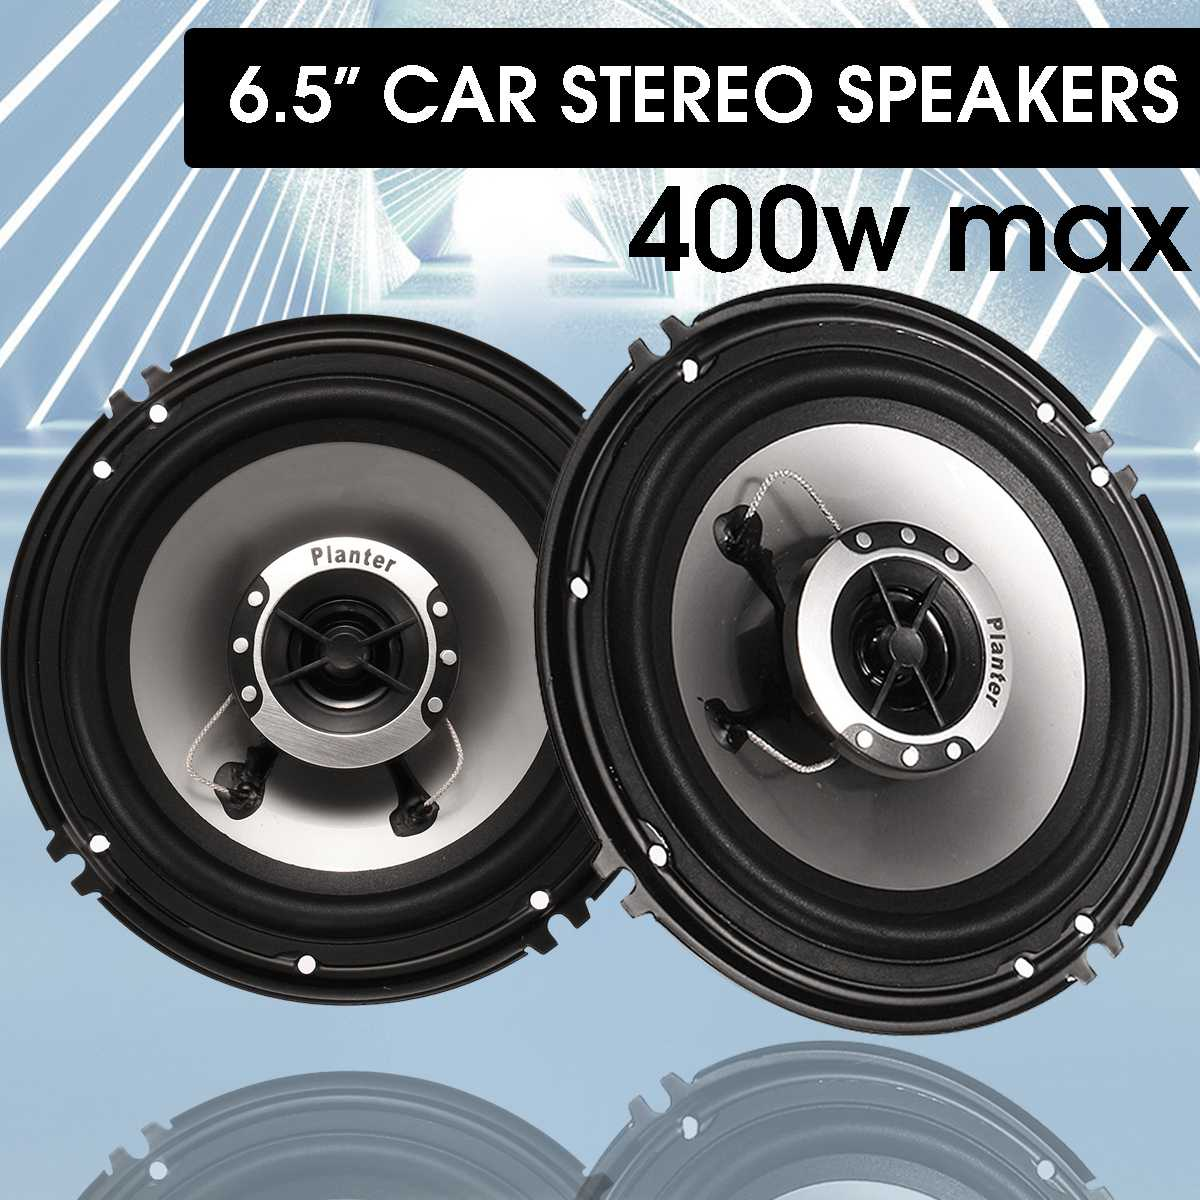 1 Pair <font><b>Car</b></font> <font><b>Audio</b></font> <font><b>Speaker</b></font> 6.5 Inch 400W 4 Way Coaxial Loud <font><b>Speaker</b></font> Universal Vehicle Auto <font><b>Audio</b></font> Music Stereo Hifi Loudspeakers image